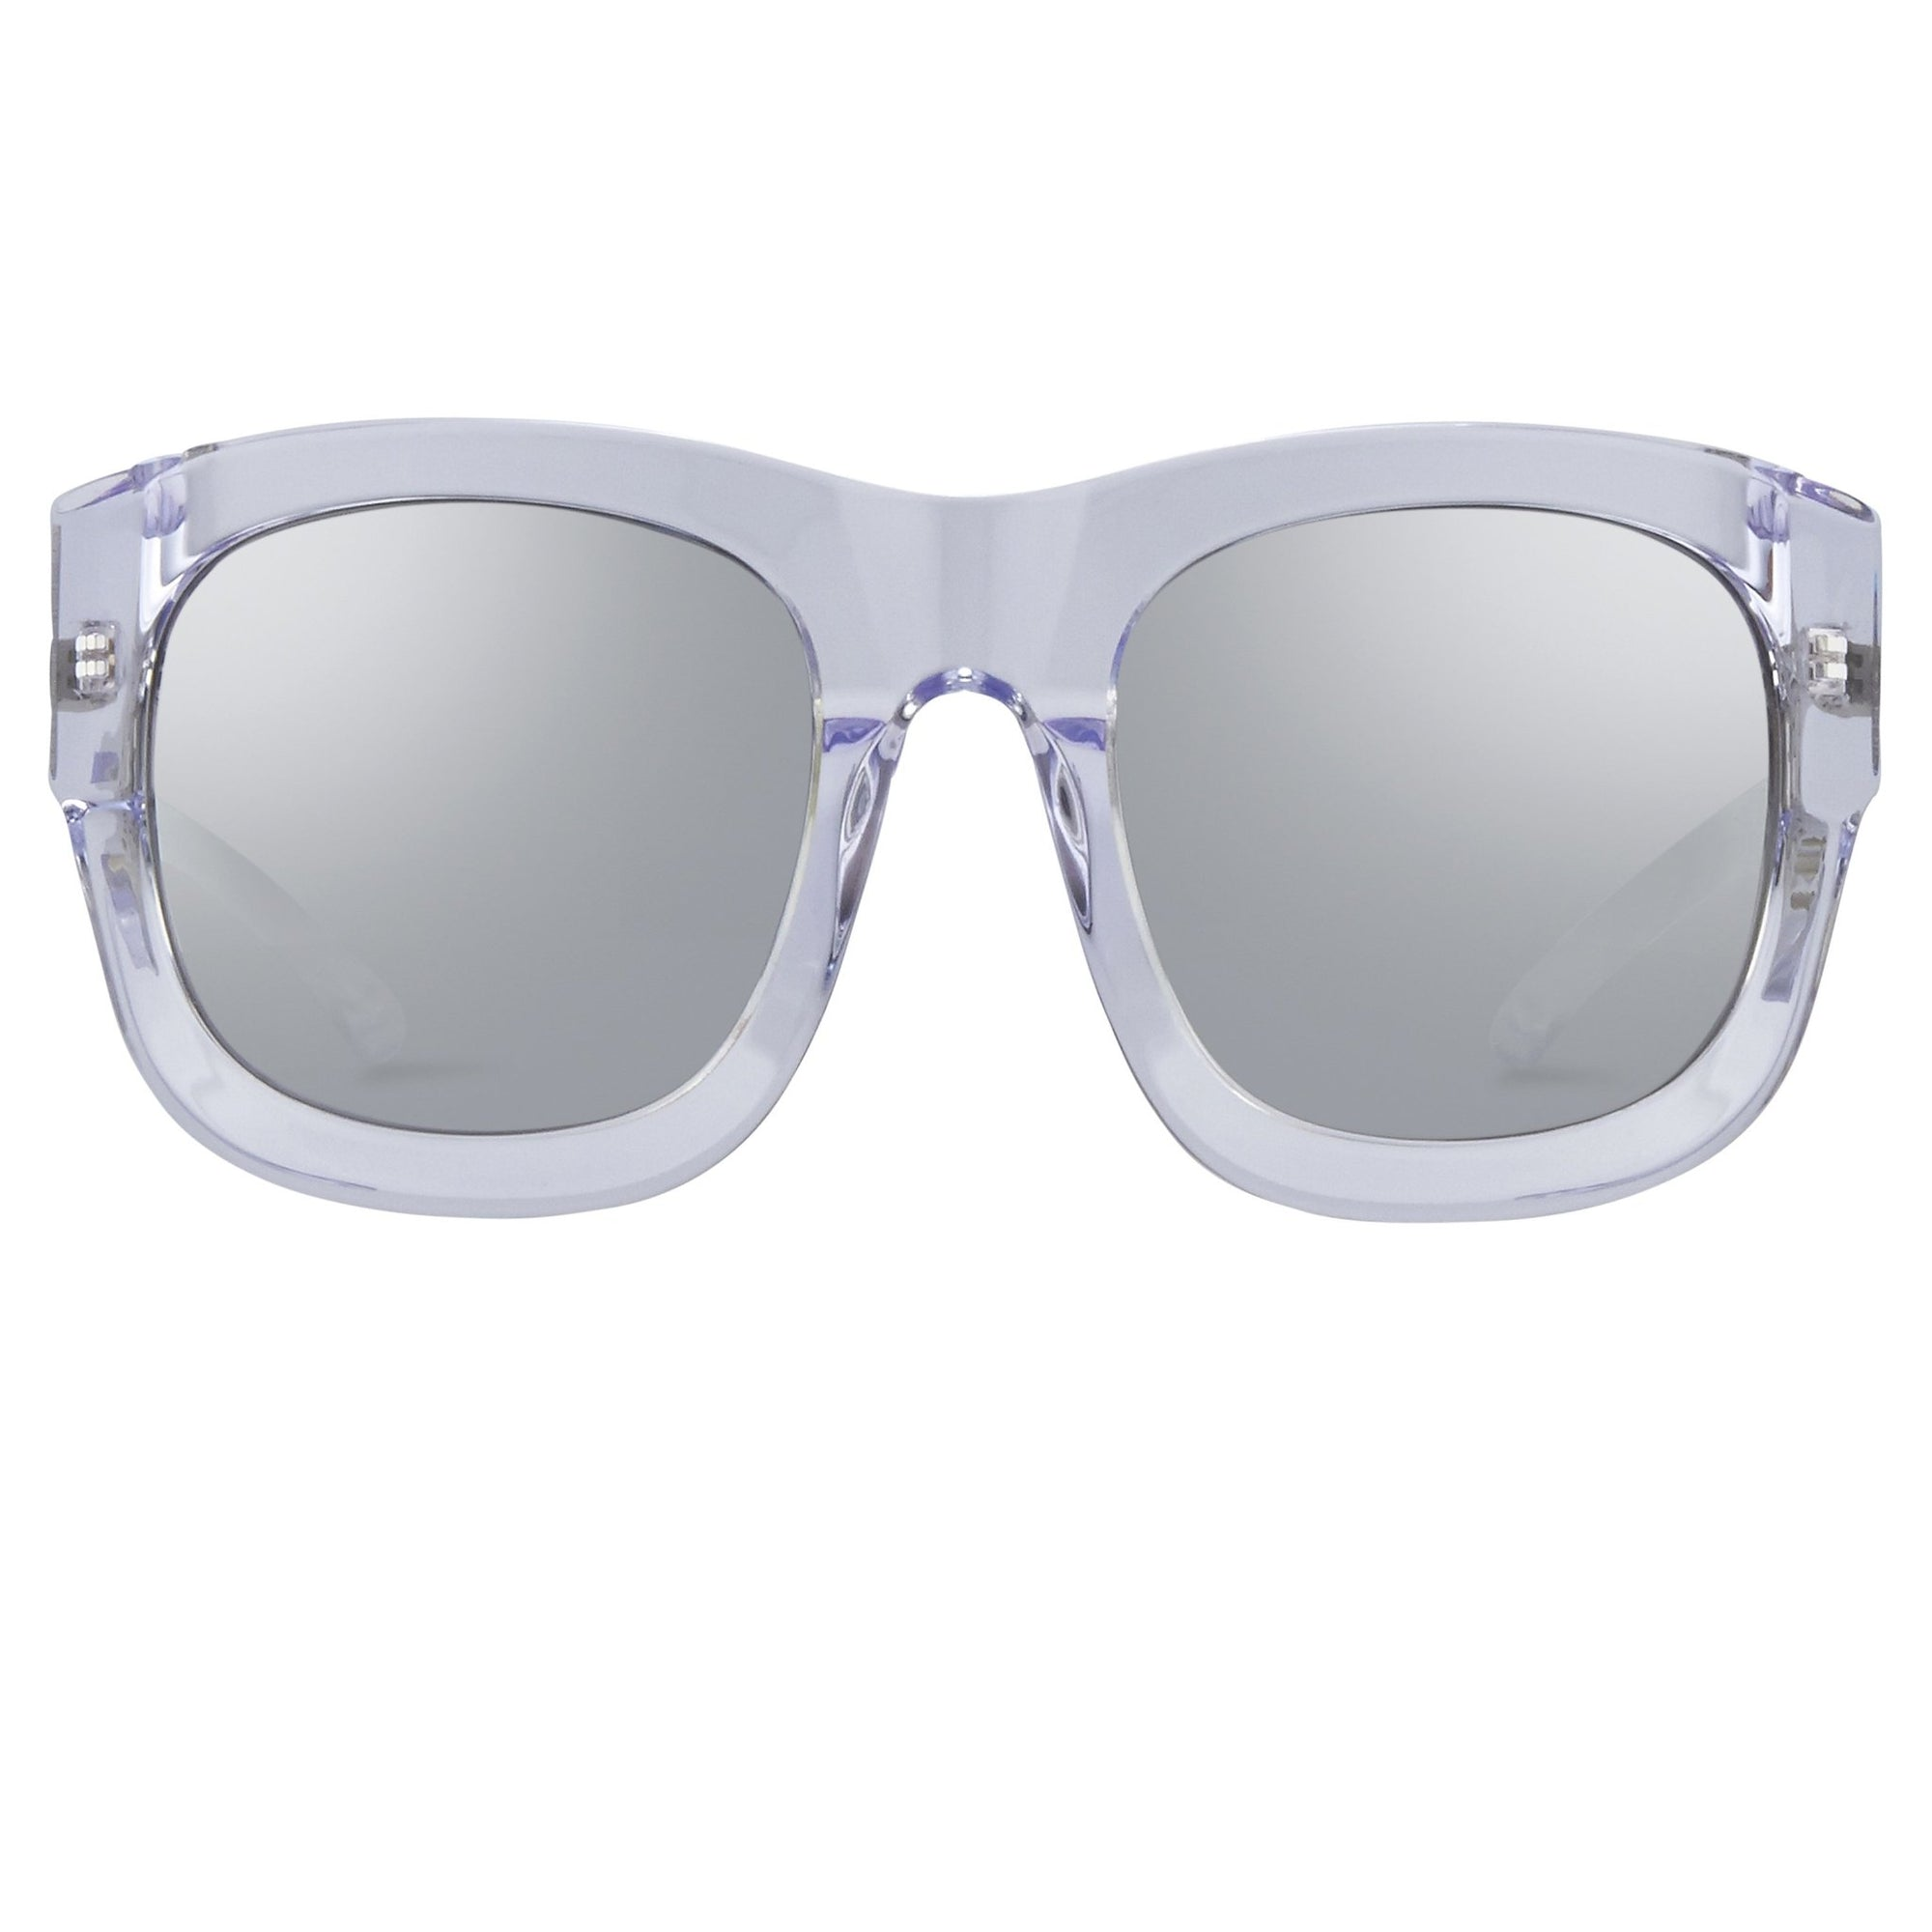 Kokon To Zai Sunglasses Oversized Clear With Silver Category 3 Mirror Lenses KTZ17C3SUN - Watches & Crystals